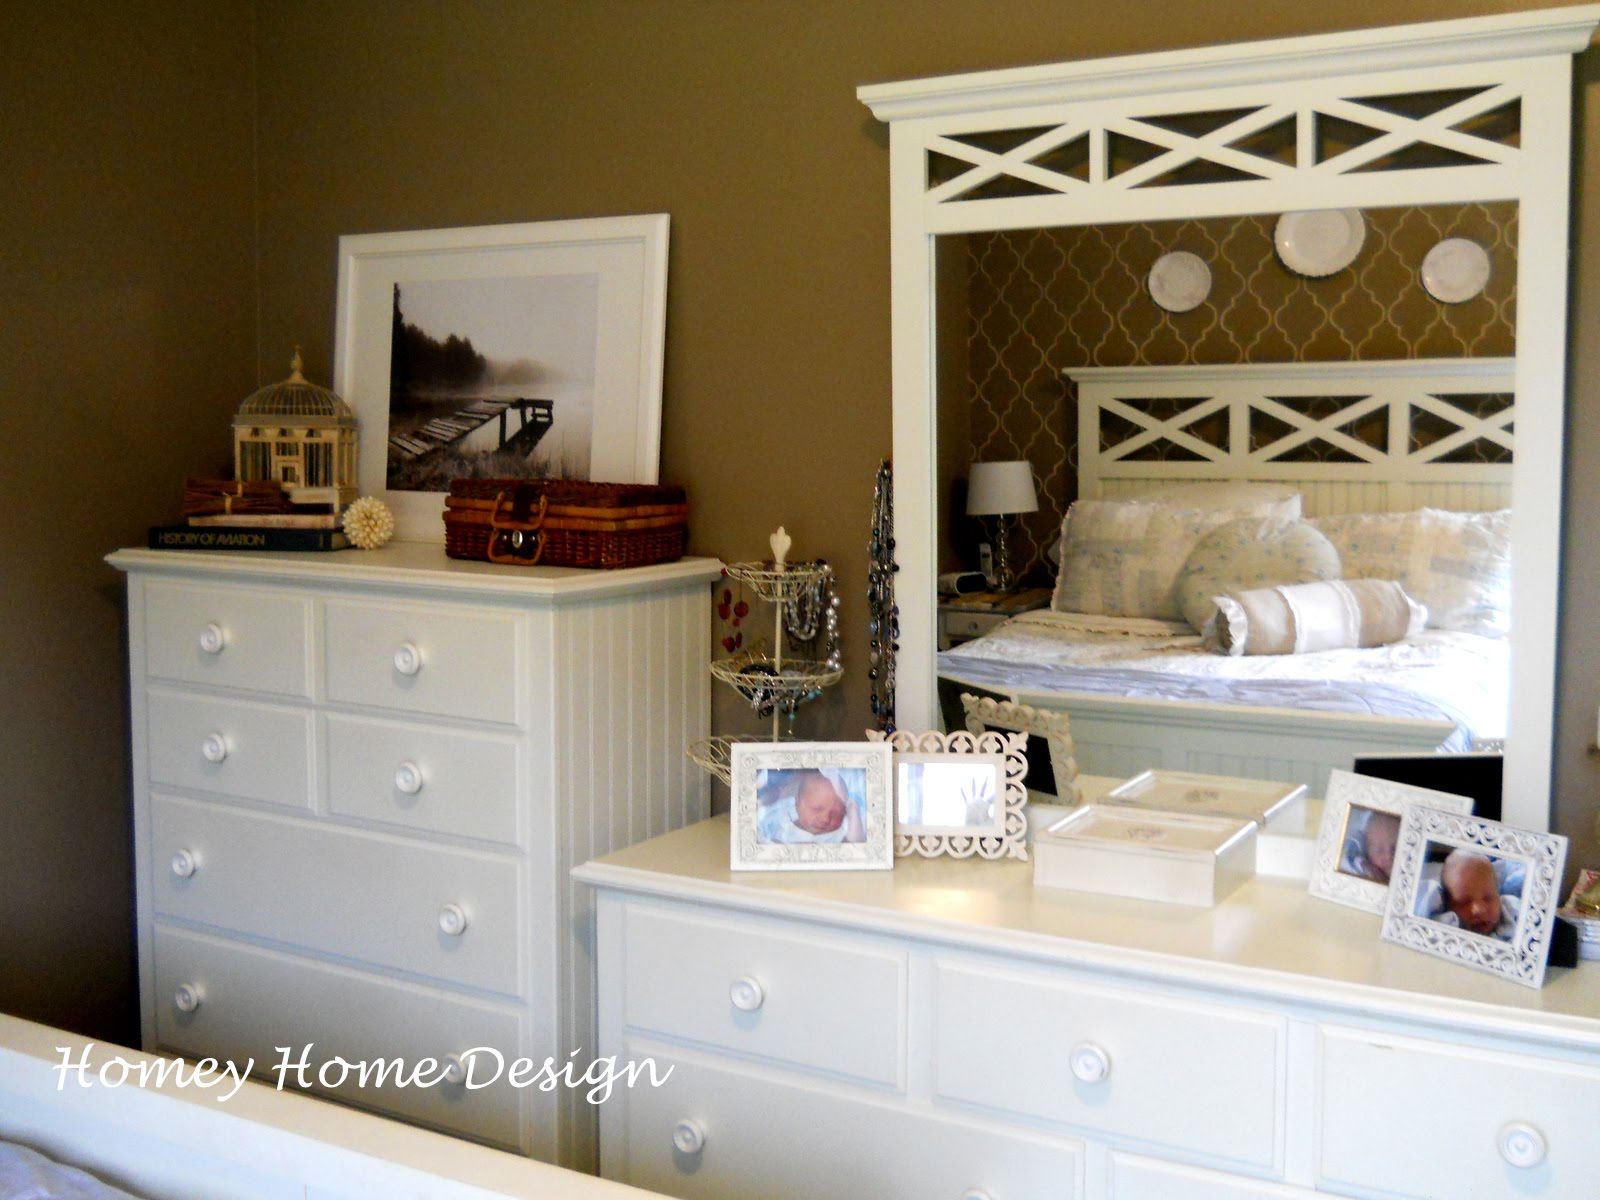 Best H*M*Y Home Design Dresser Decor This Month